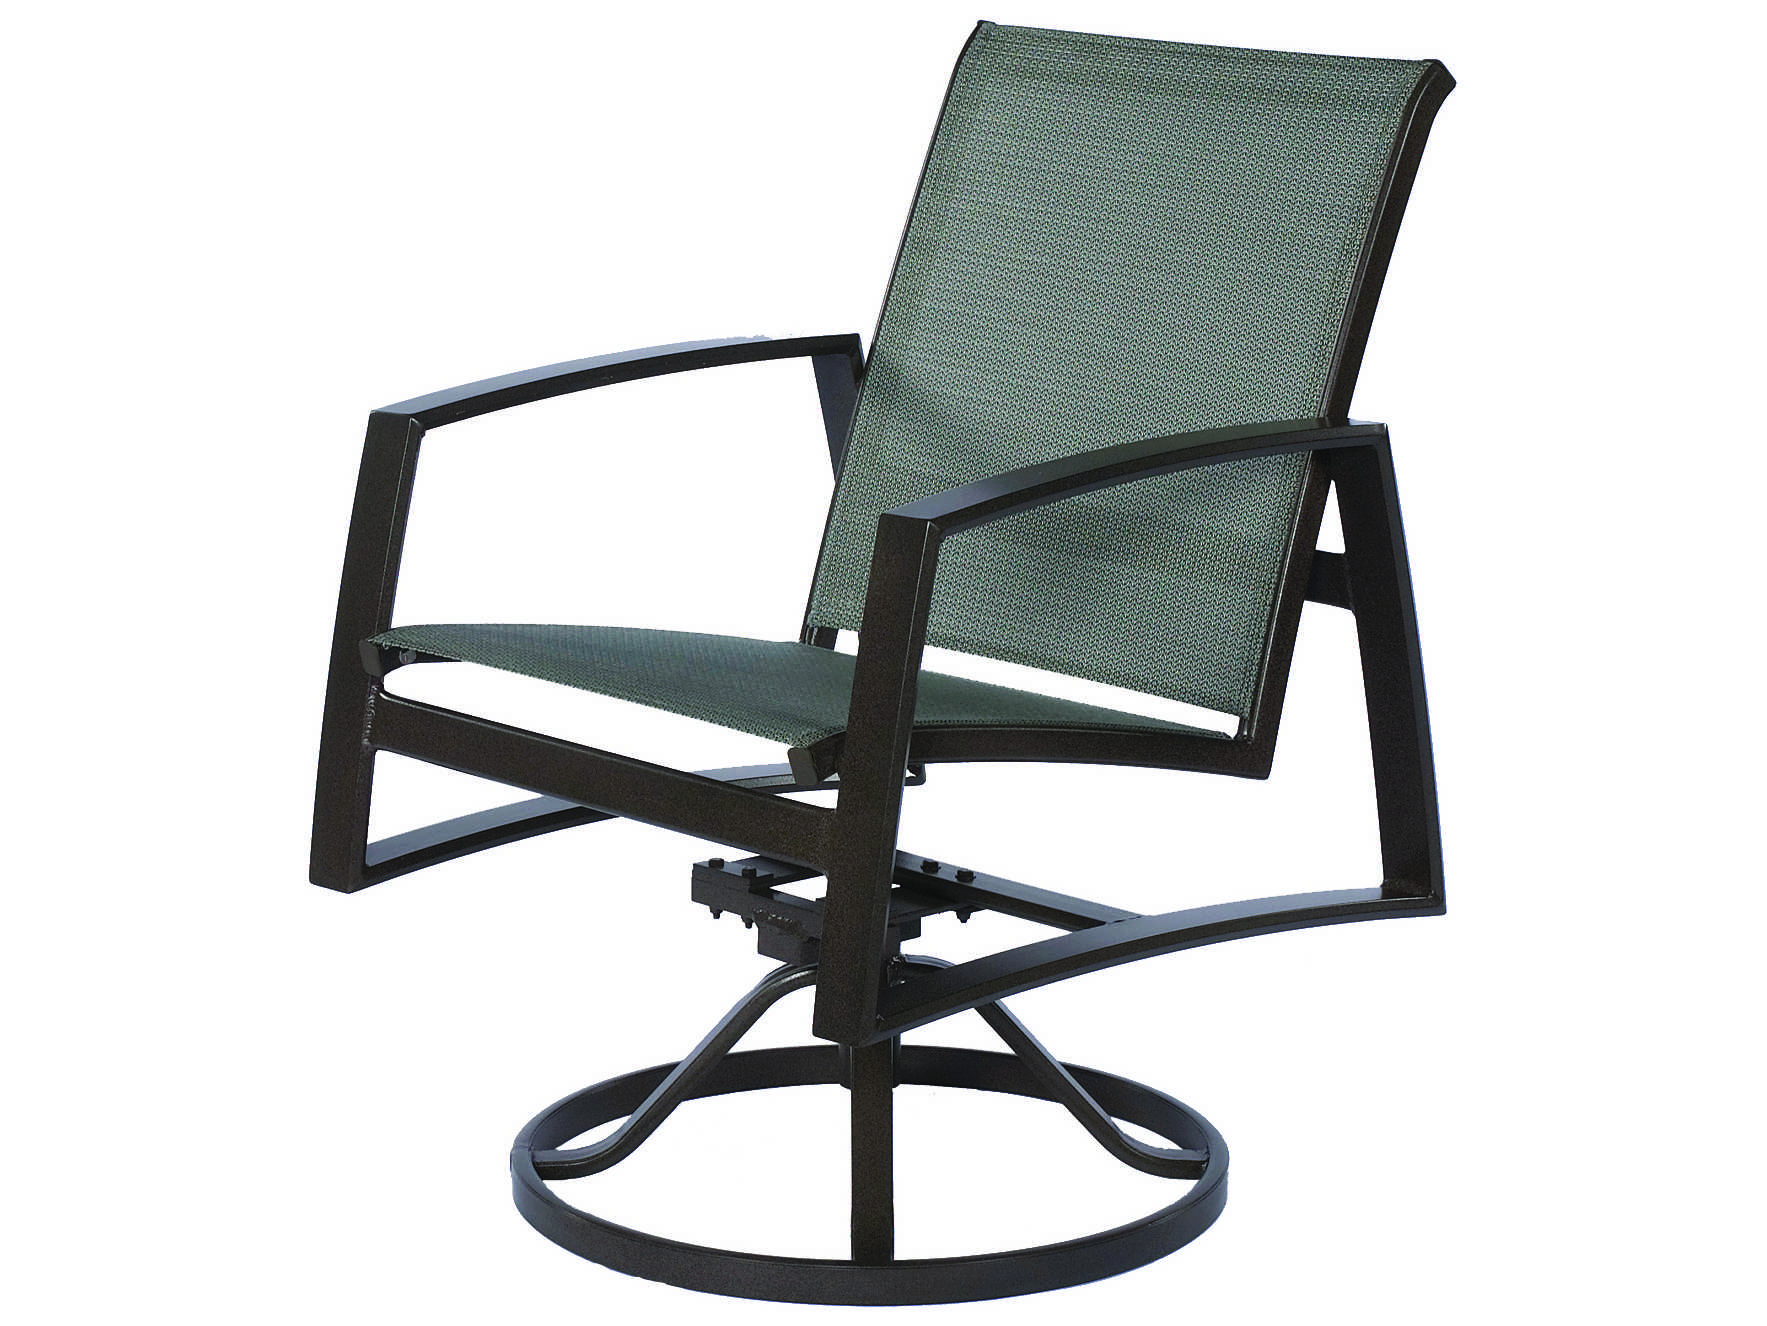 Sling Chairs Suncoast Vision Sling Cast Aluminum Arm Swivel Rocker